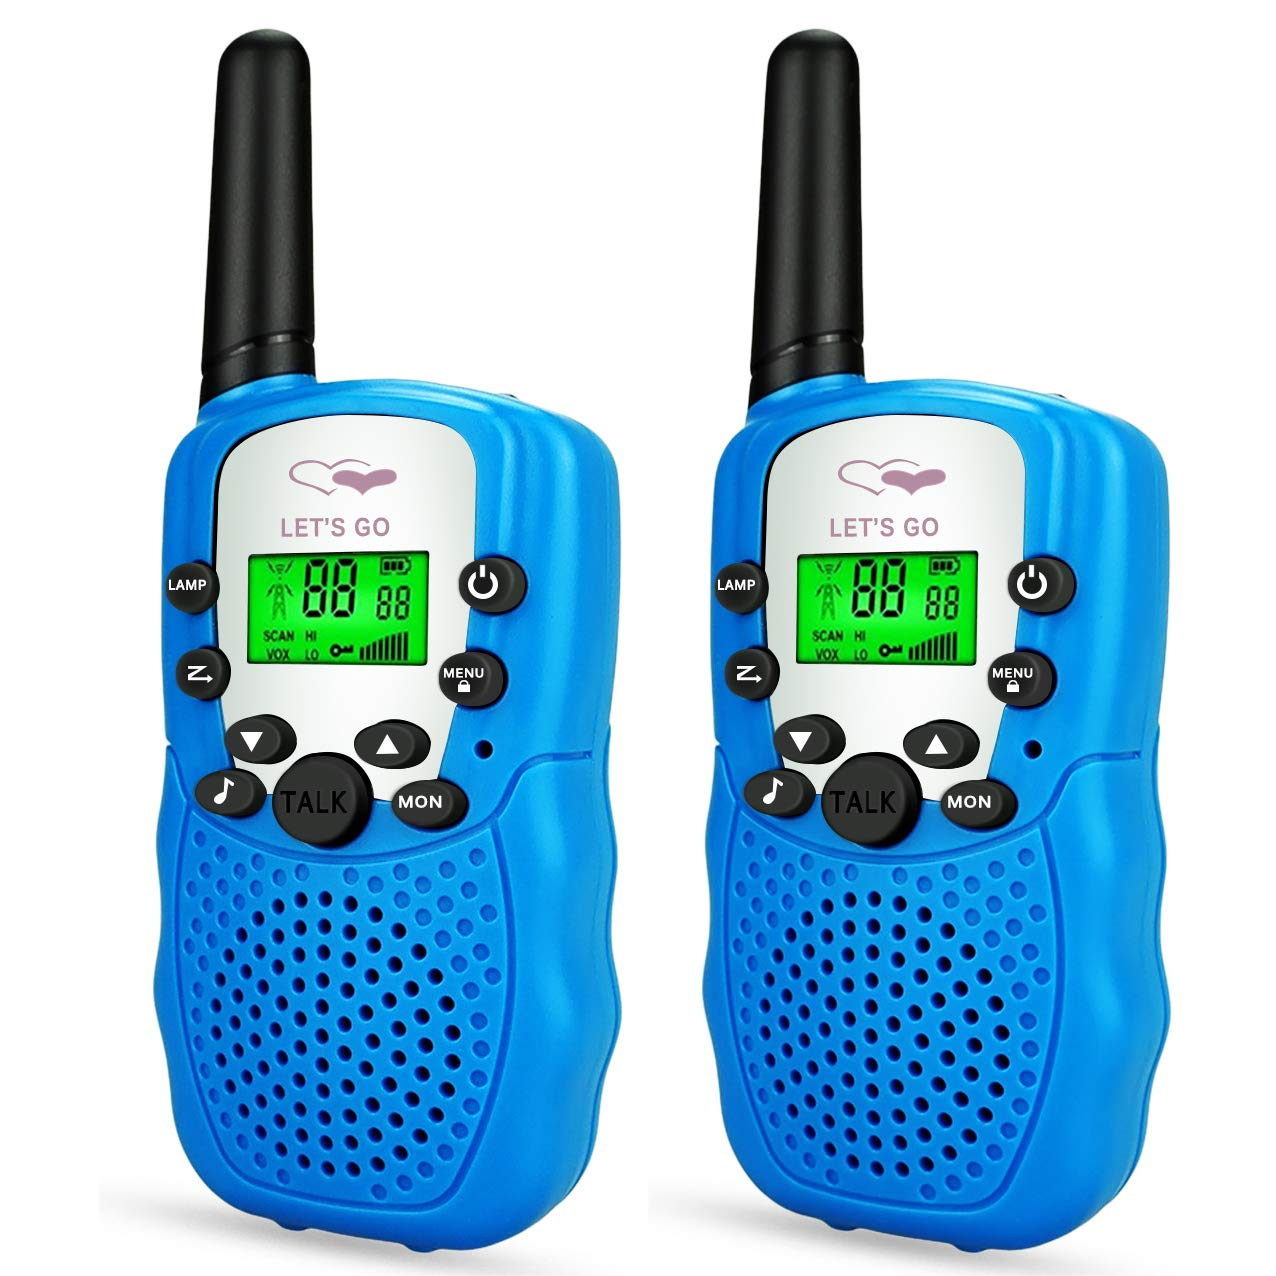 TOP Gift Toys for 3-12 Year Old Kids, Handheld Walkie Talkies for Kids 2 Mile Range Hallowee Gifts for Boys Girls Kid 2018 Christmas New Gifts for Kids Boys Girls 3-12 Stocking Fillers Blue TGDJ02 by Dreamingbox